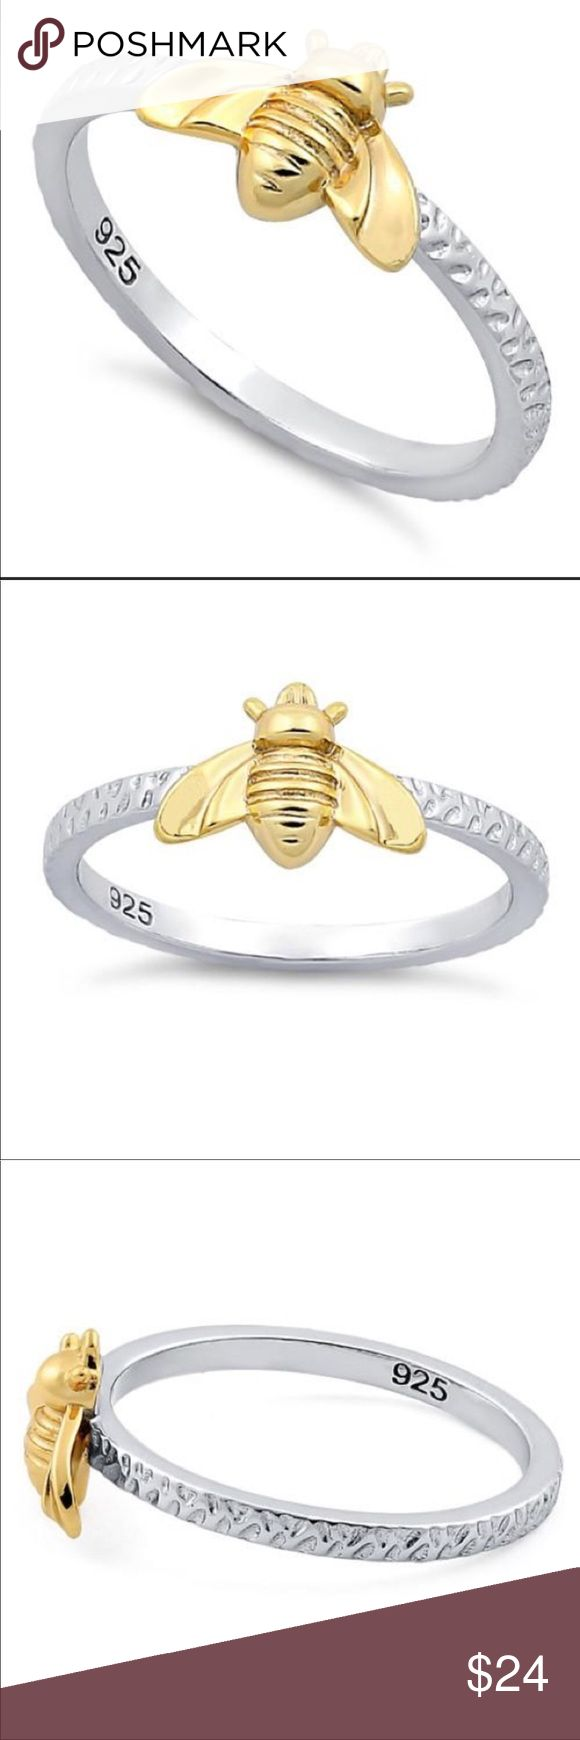 Bee ring Top of ring height: 7.8mm Top of ring width: 10.7mm Band width: 1.7mm Shank width: 1.7mm Metal: 925 sterling silver Plating: 14K yellow gold, rhodium plated Finish: high polish  Different sizes available please ask Jewelry Rings